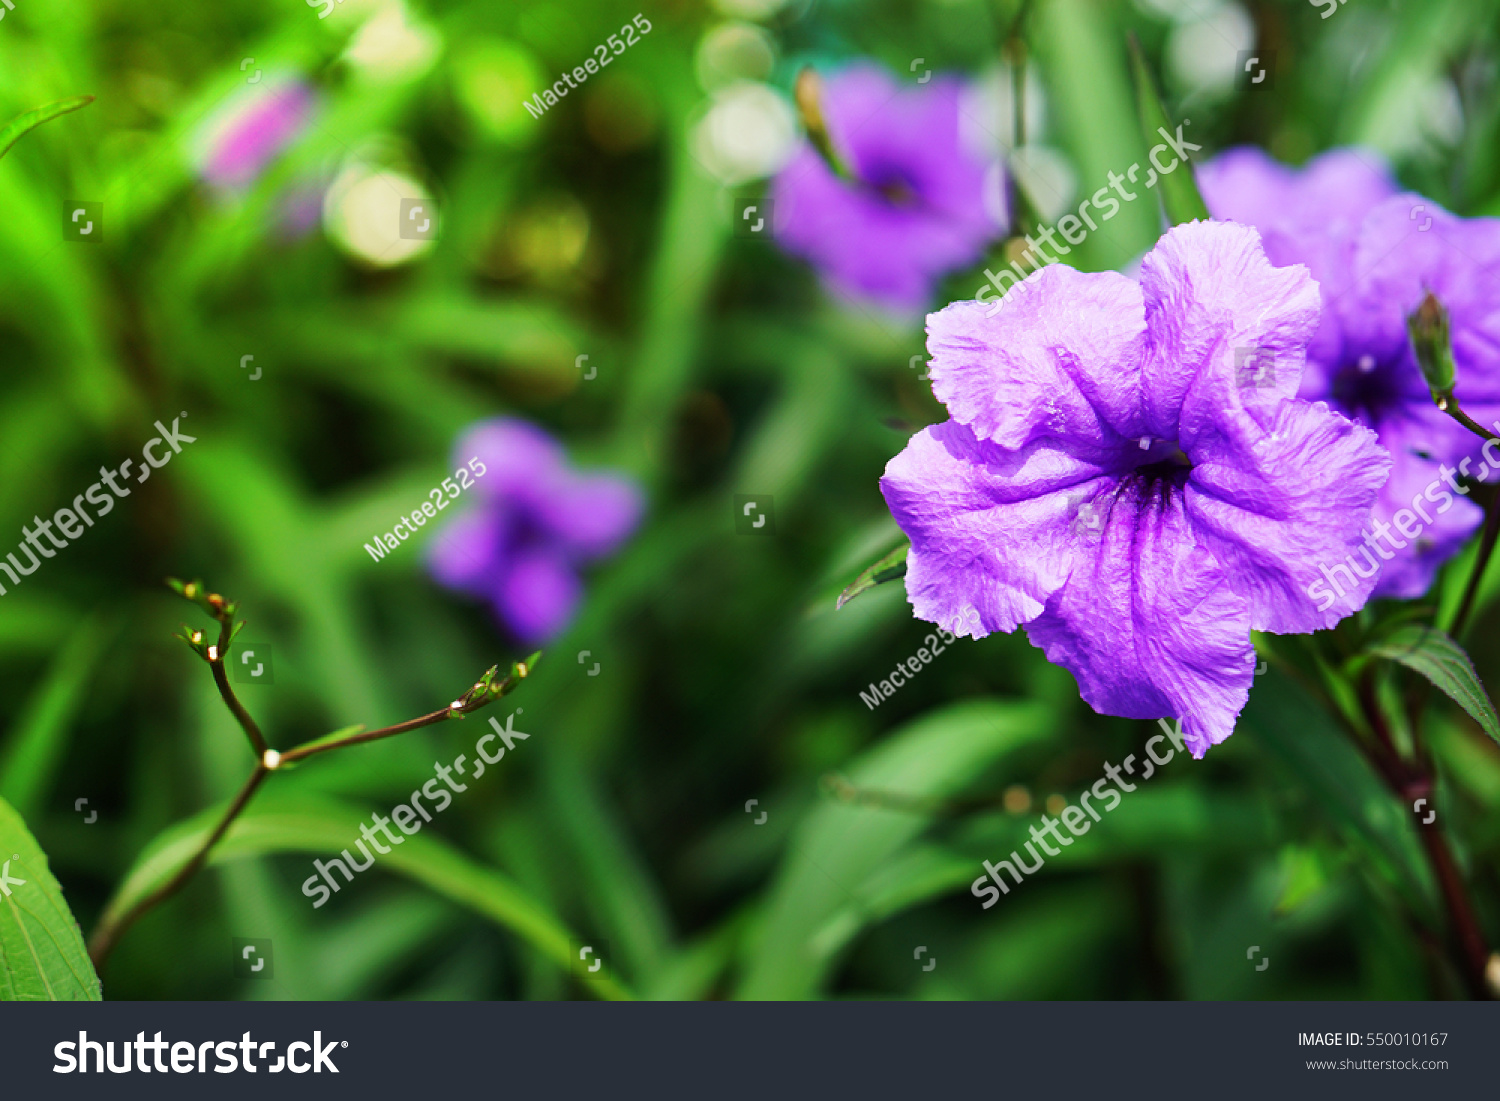 Ruellia tuberoza close up beautiful purple flowers with blur green id 550010167 izmirmasajfo